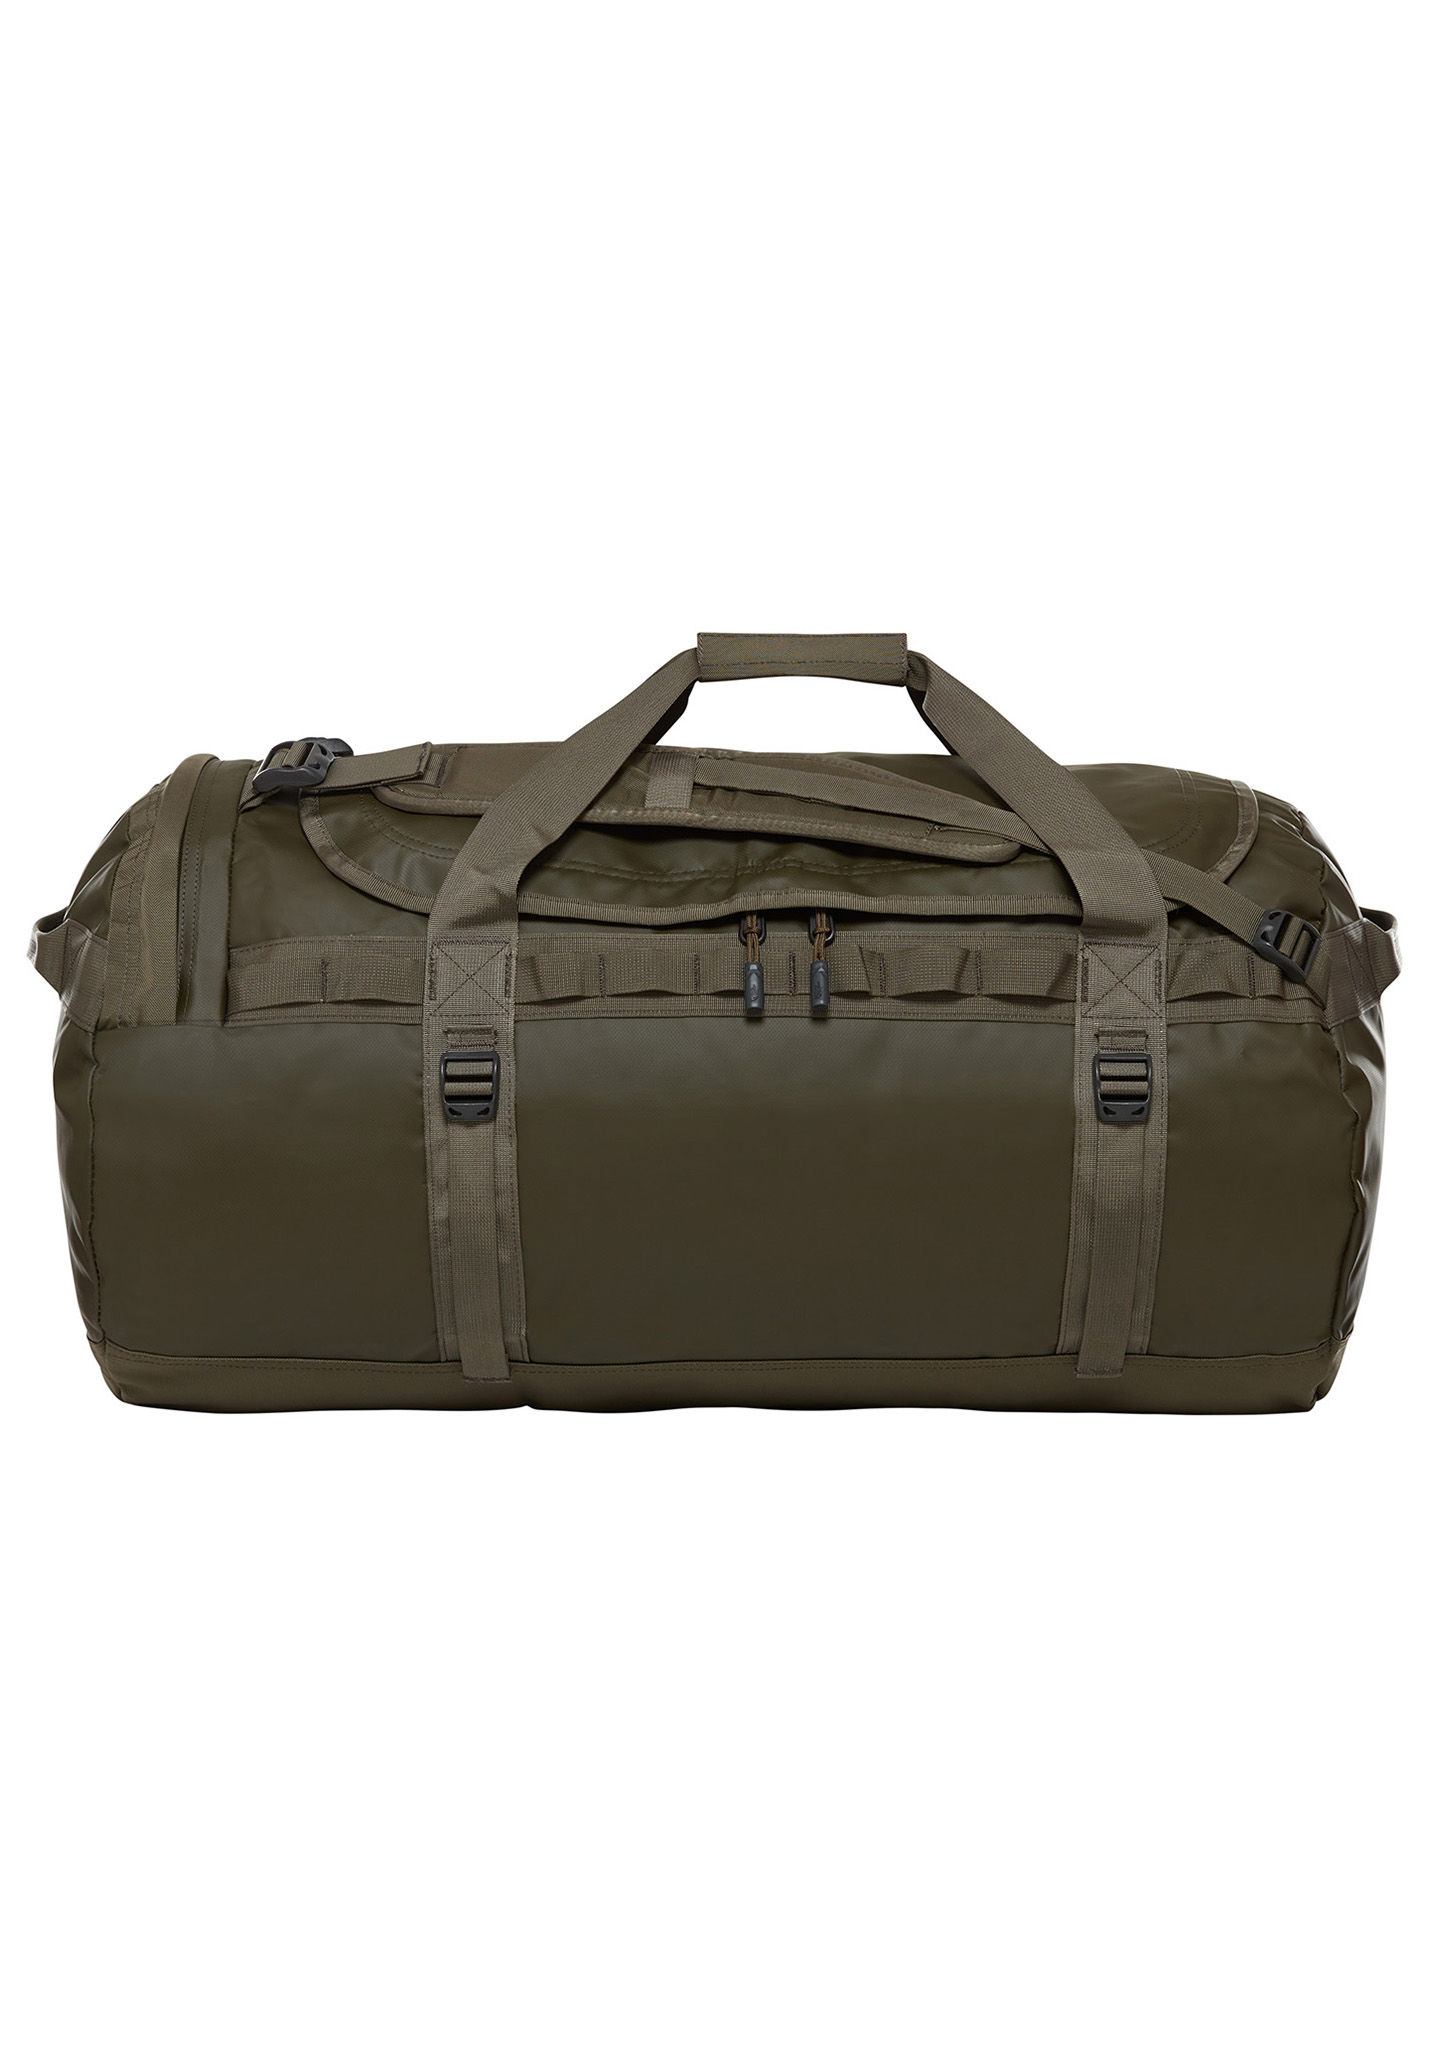 0793f0747 THE NORTH FACE Base Camp Duffel L - Gym Bag - Green